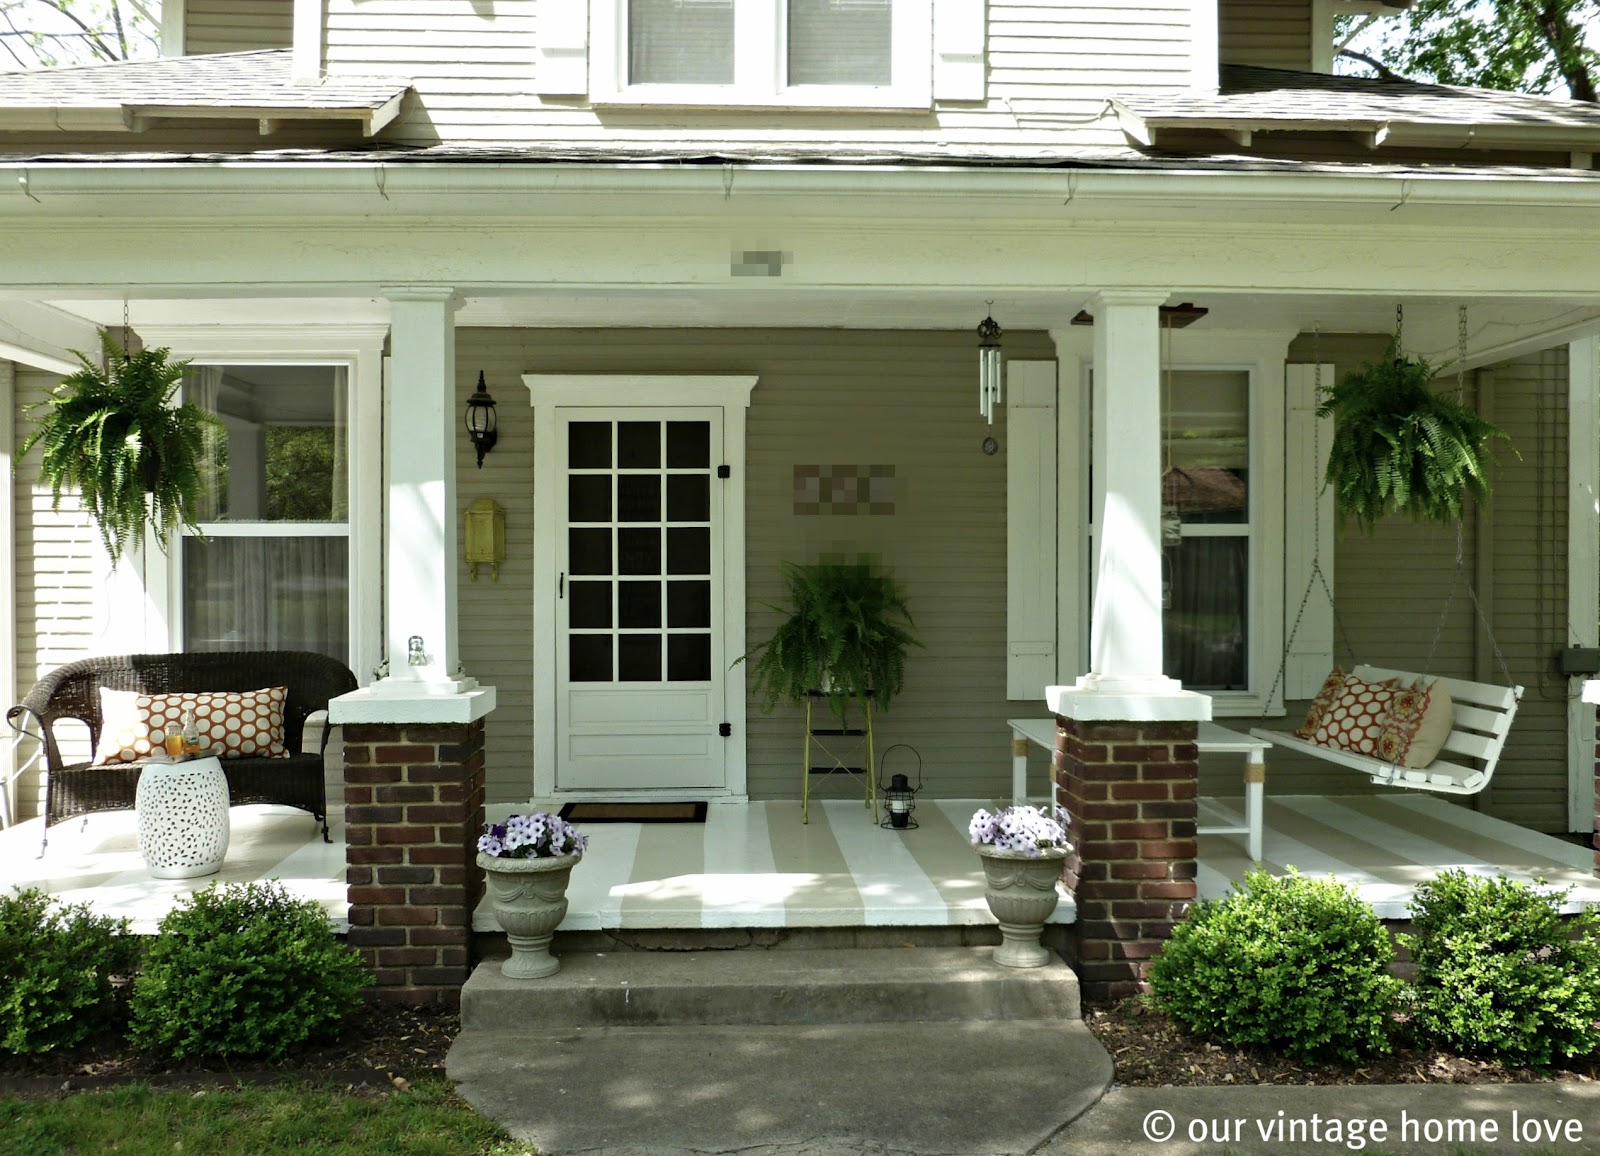 Front Porch Ideas Vintage Home Love: Spring/summer Porch Ideas